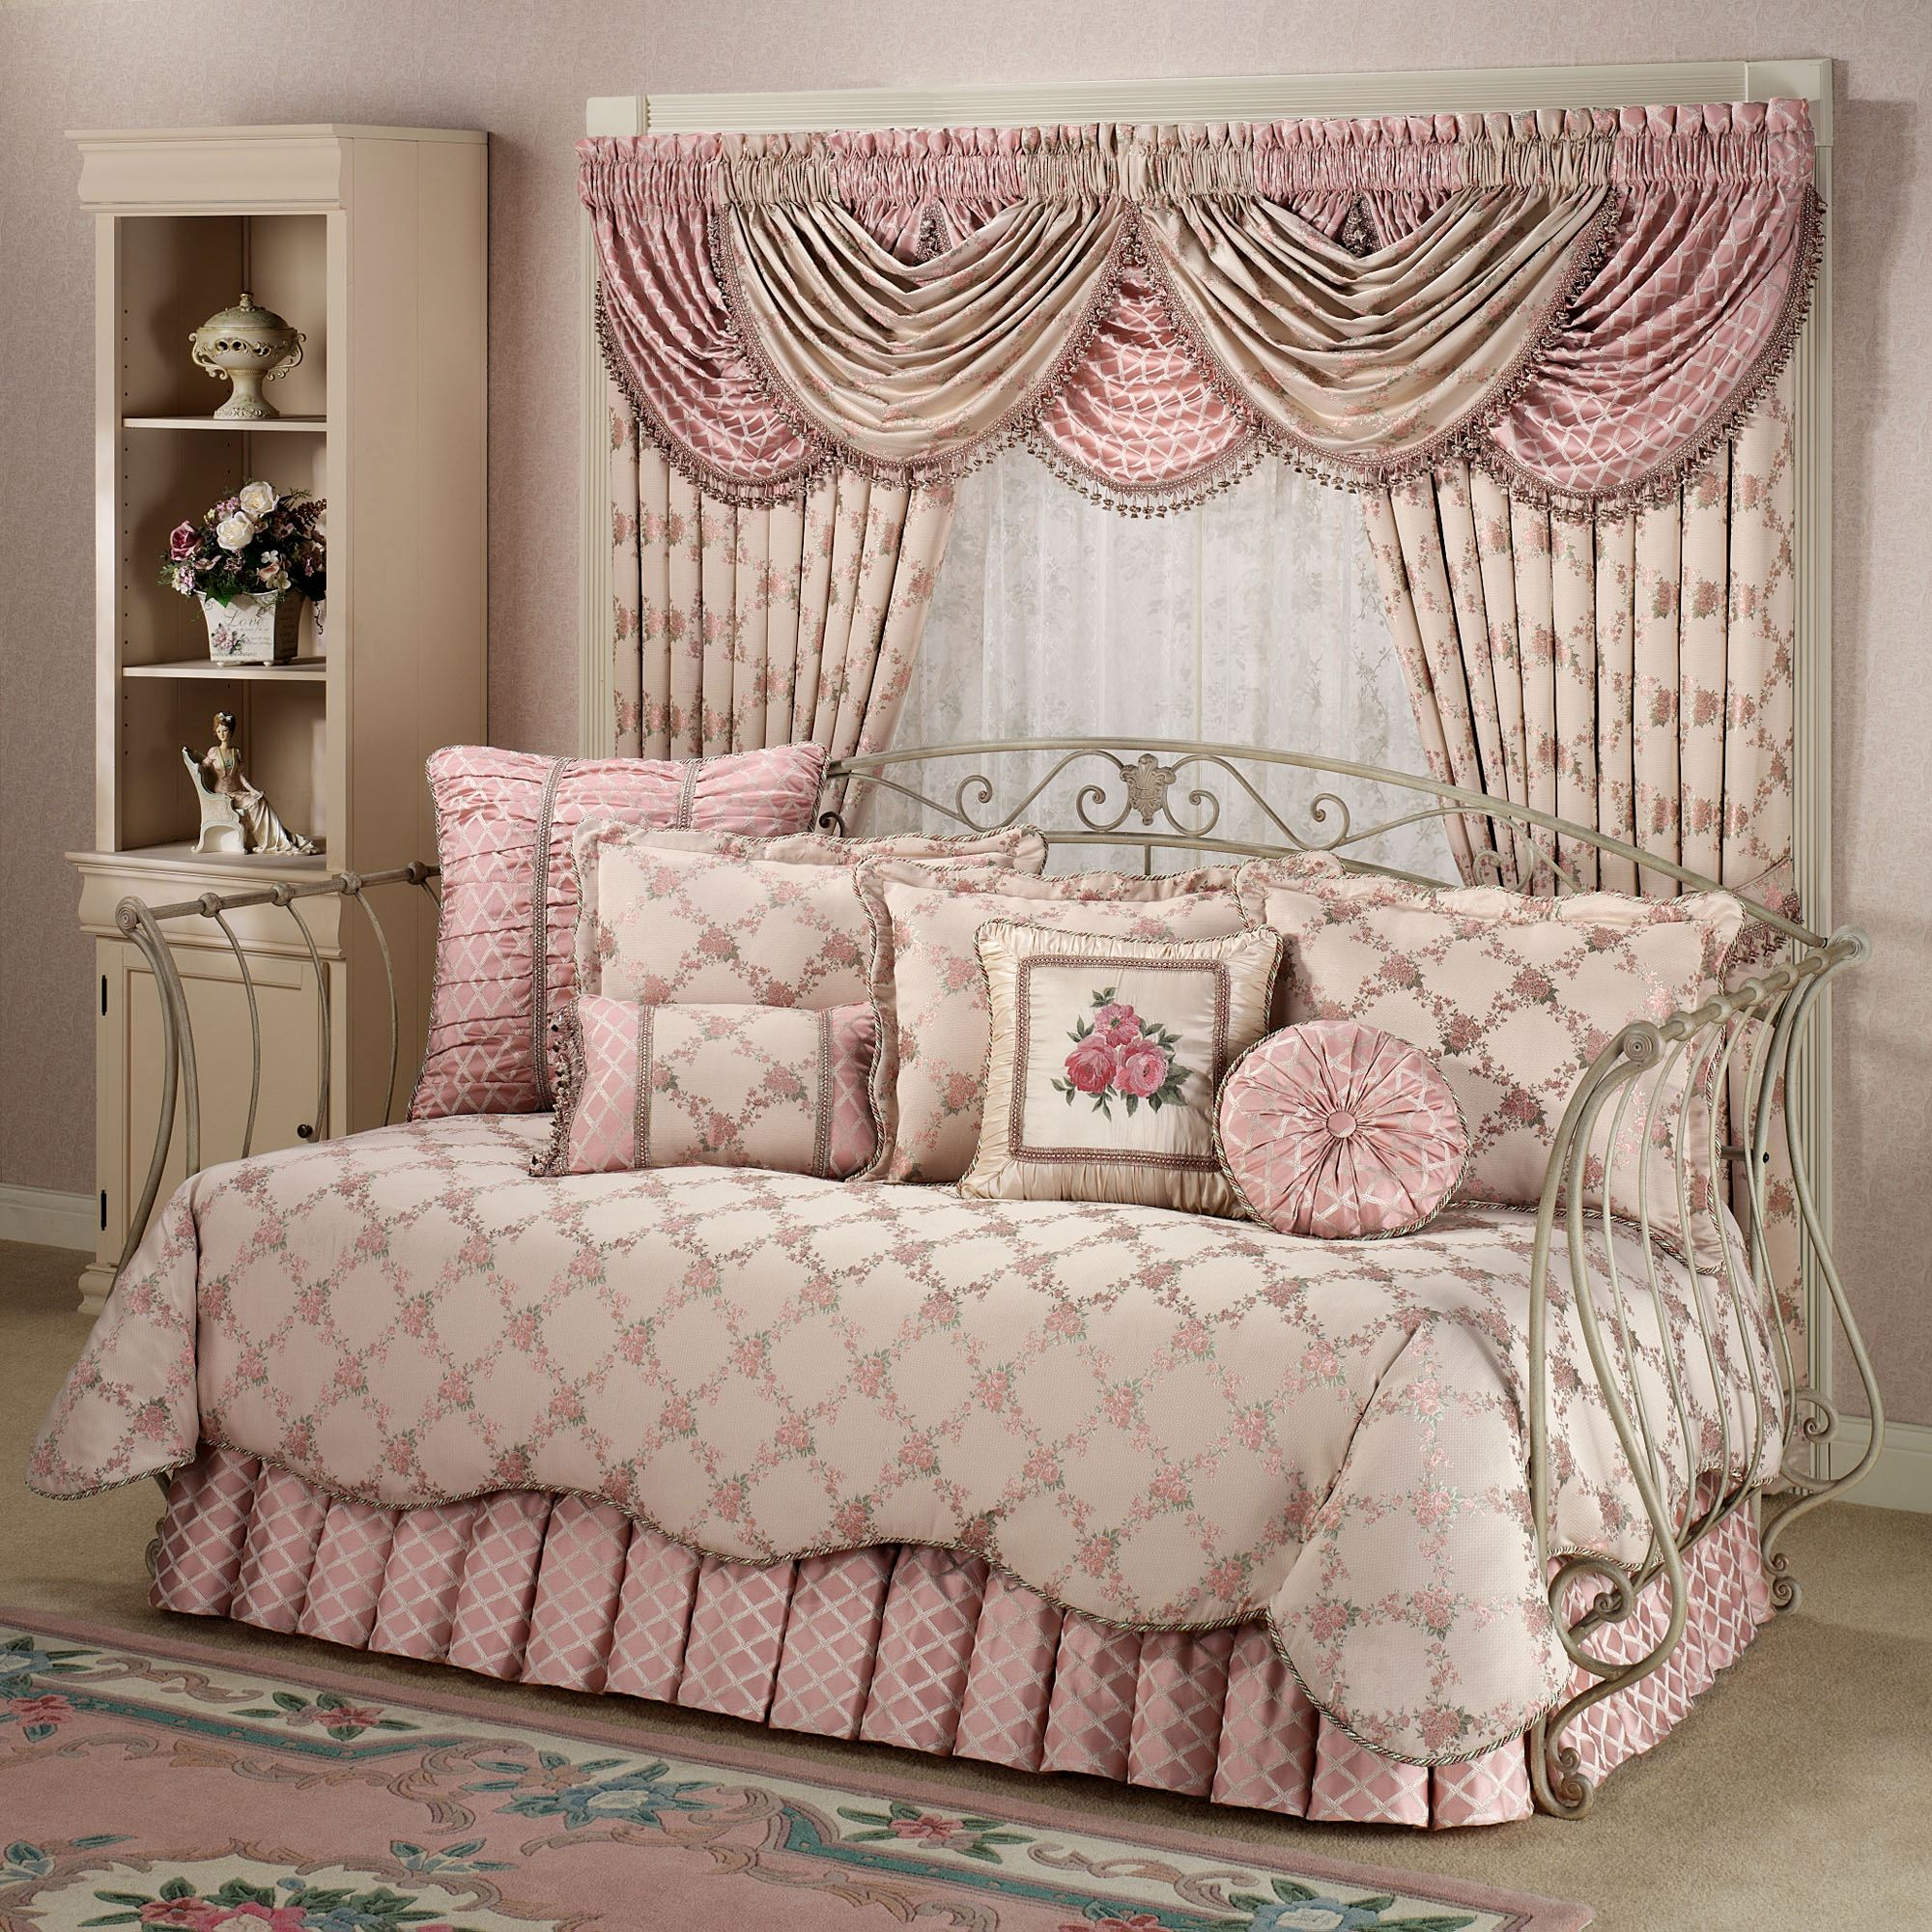 Clearance Bedroom Sets: Daybed Bedding Sets Clearance